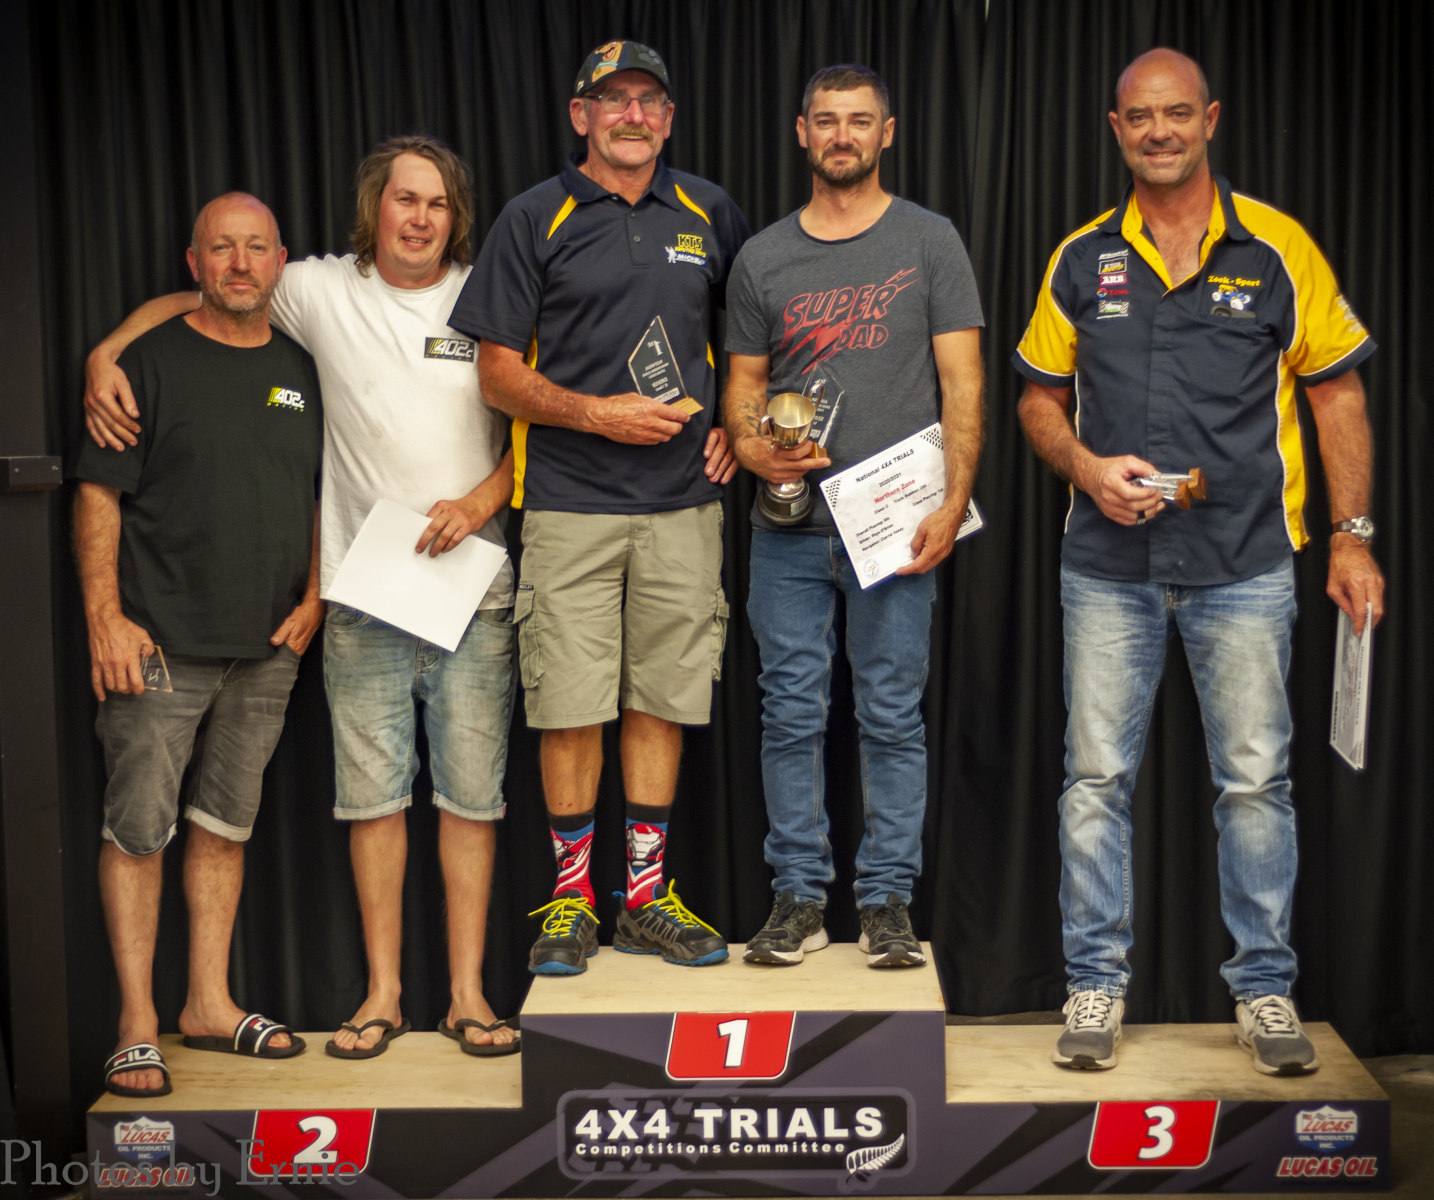 C Class: 2nd Tony Hadland & Shayne Towers, 1st Clarrie Vazey & Rhys O'Brien, 3rd Nathan Fogden & Mike Gibbons